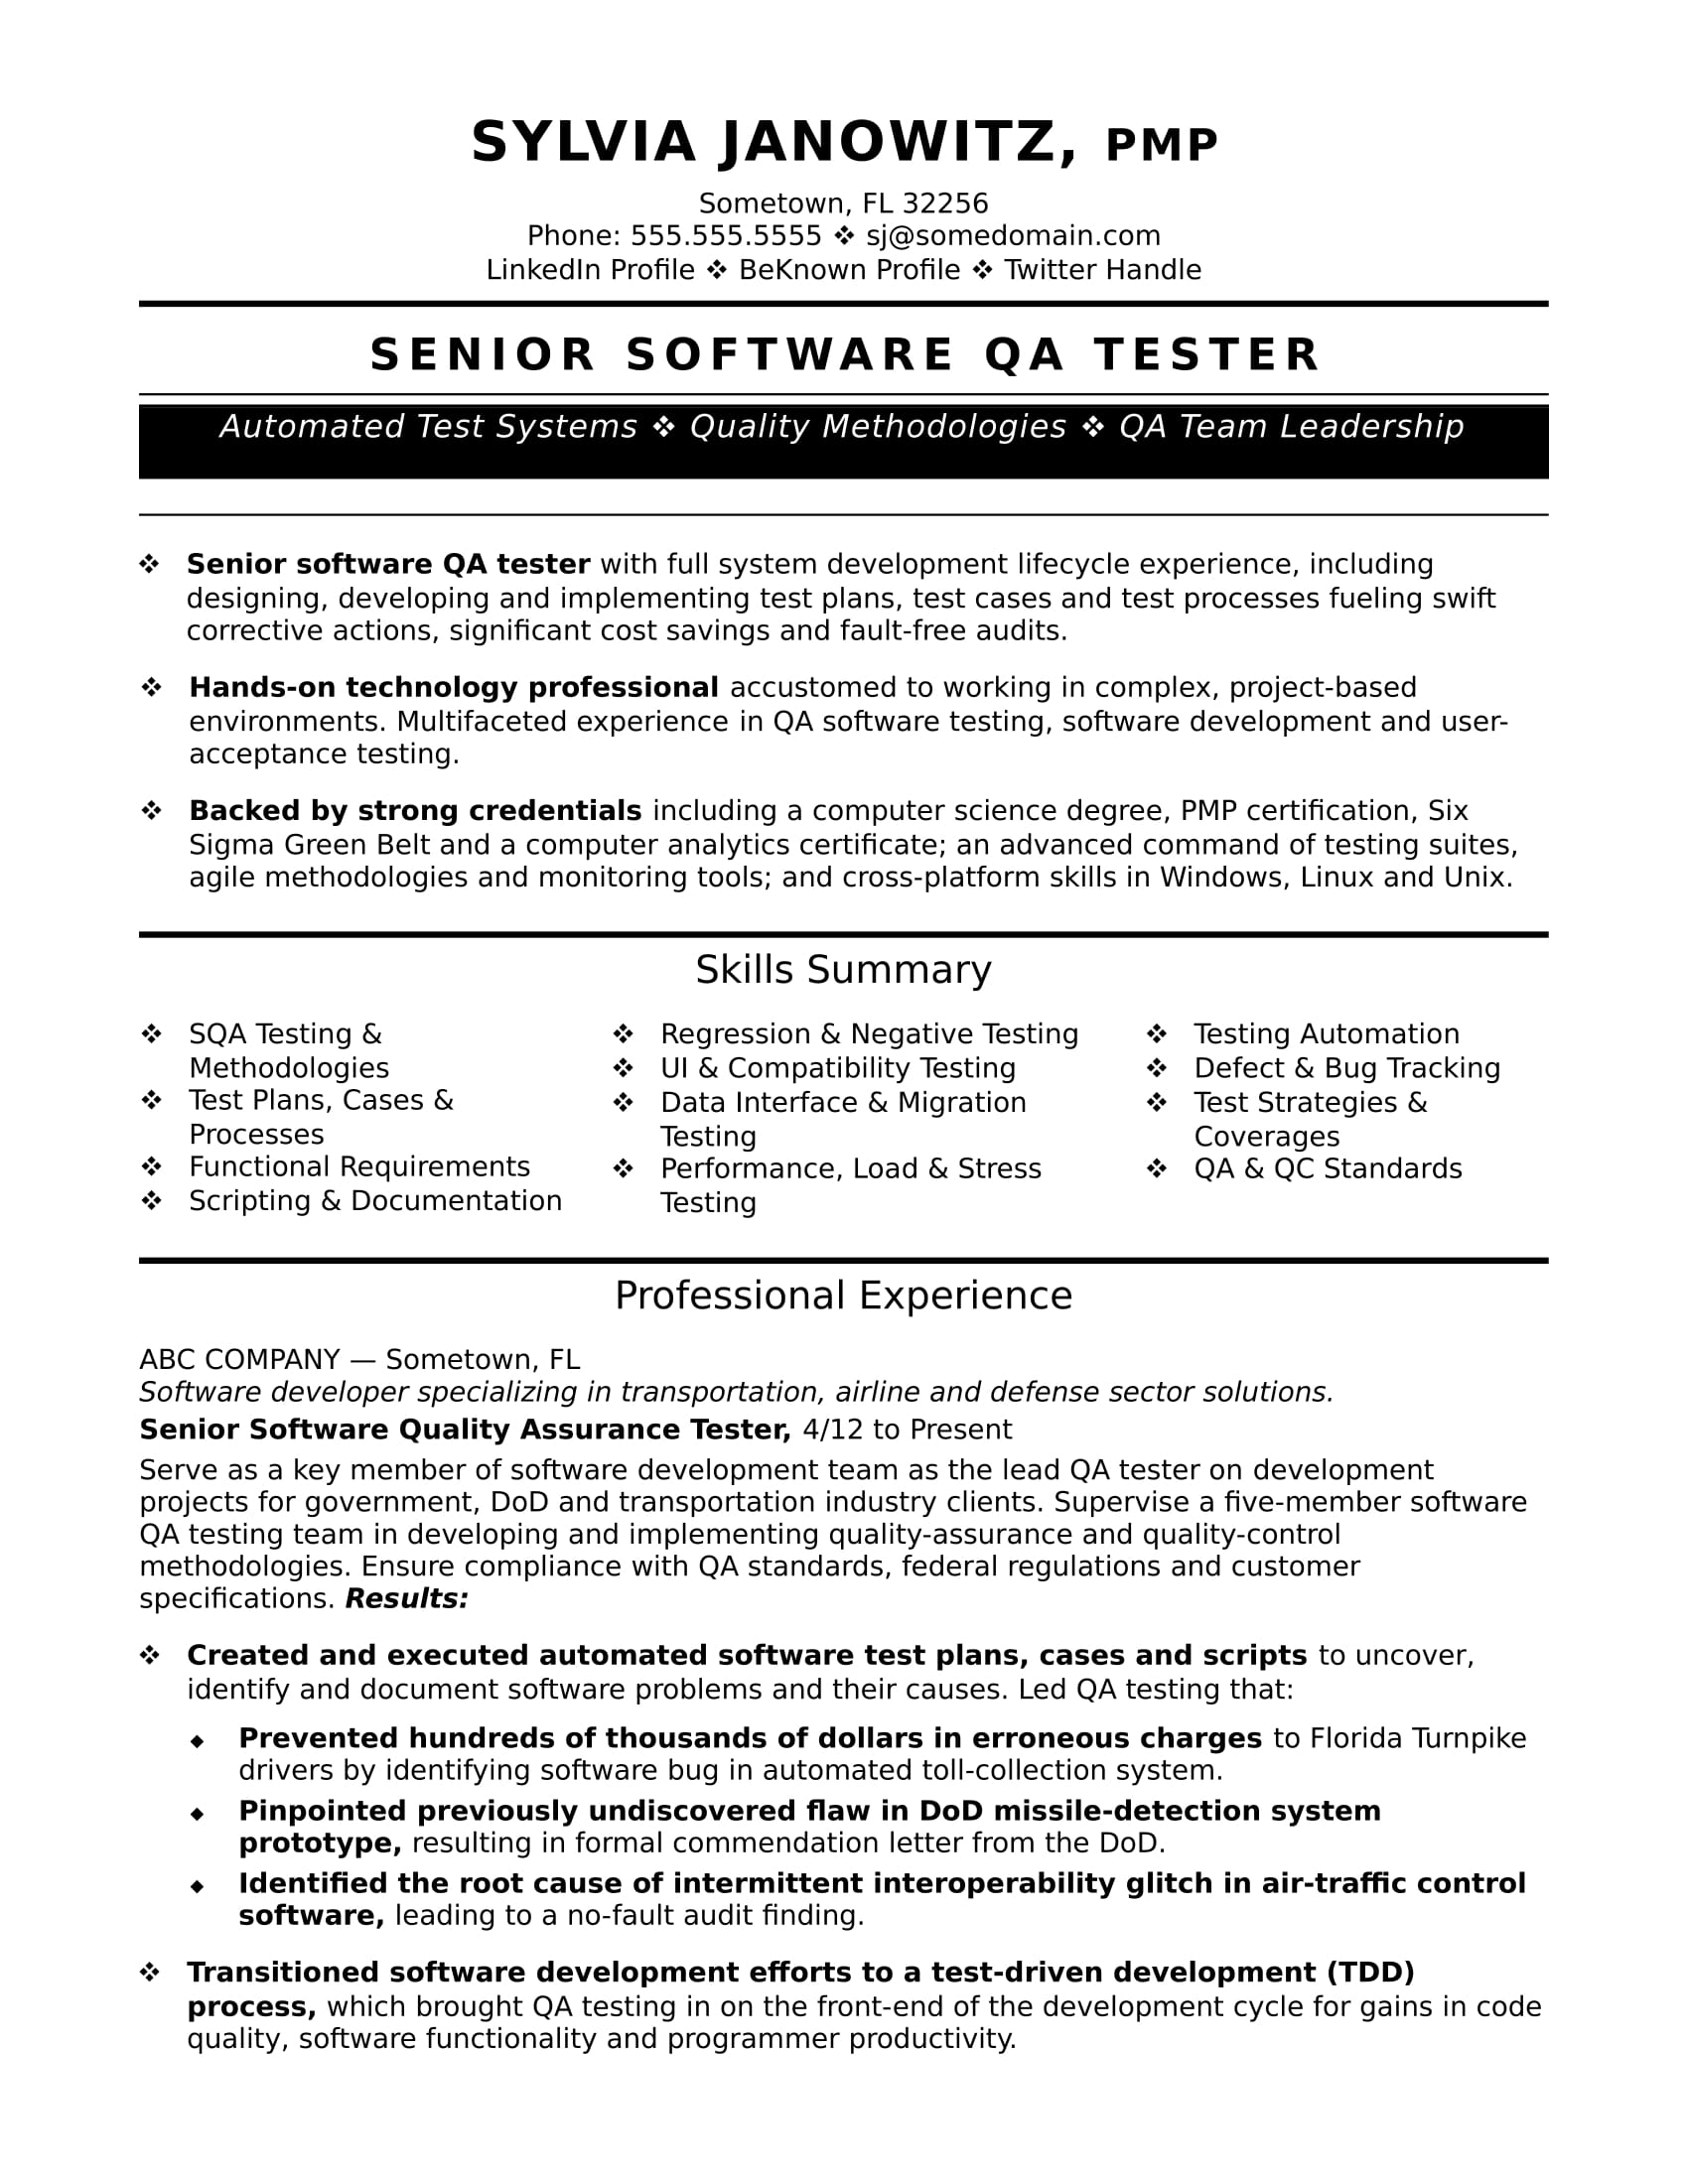 experienced qa software tester resume sample monster aem business analyst examples Resume Aem Business Analyst Resume